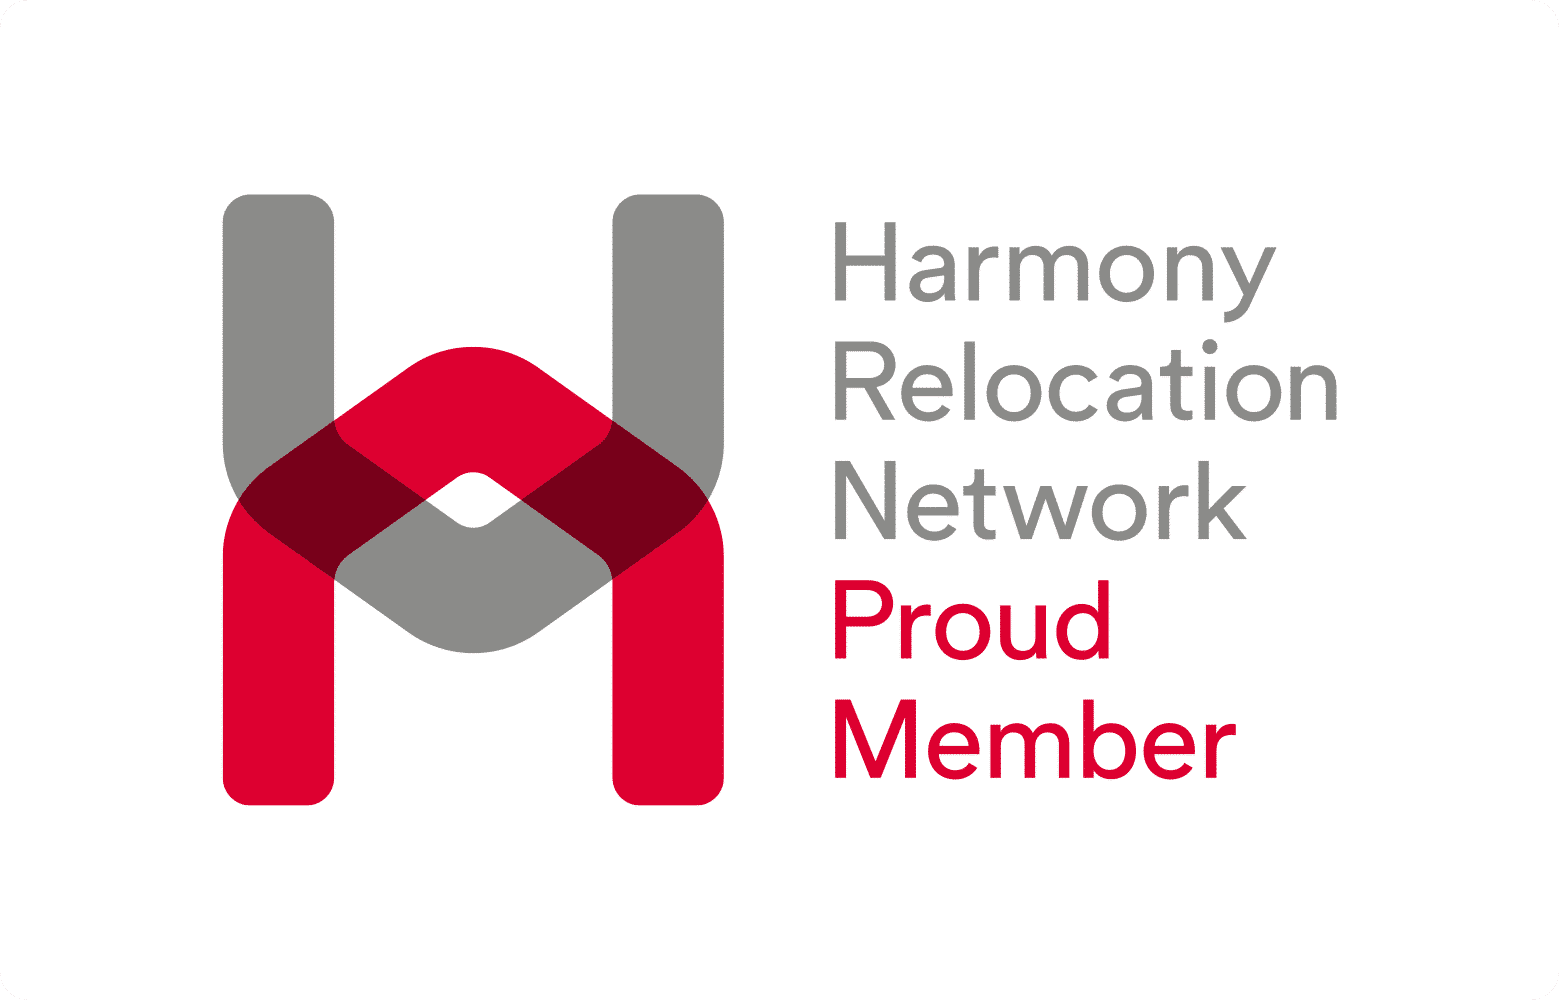 Harmony relocation proud member logo